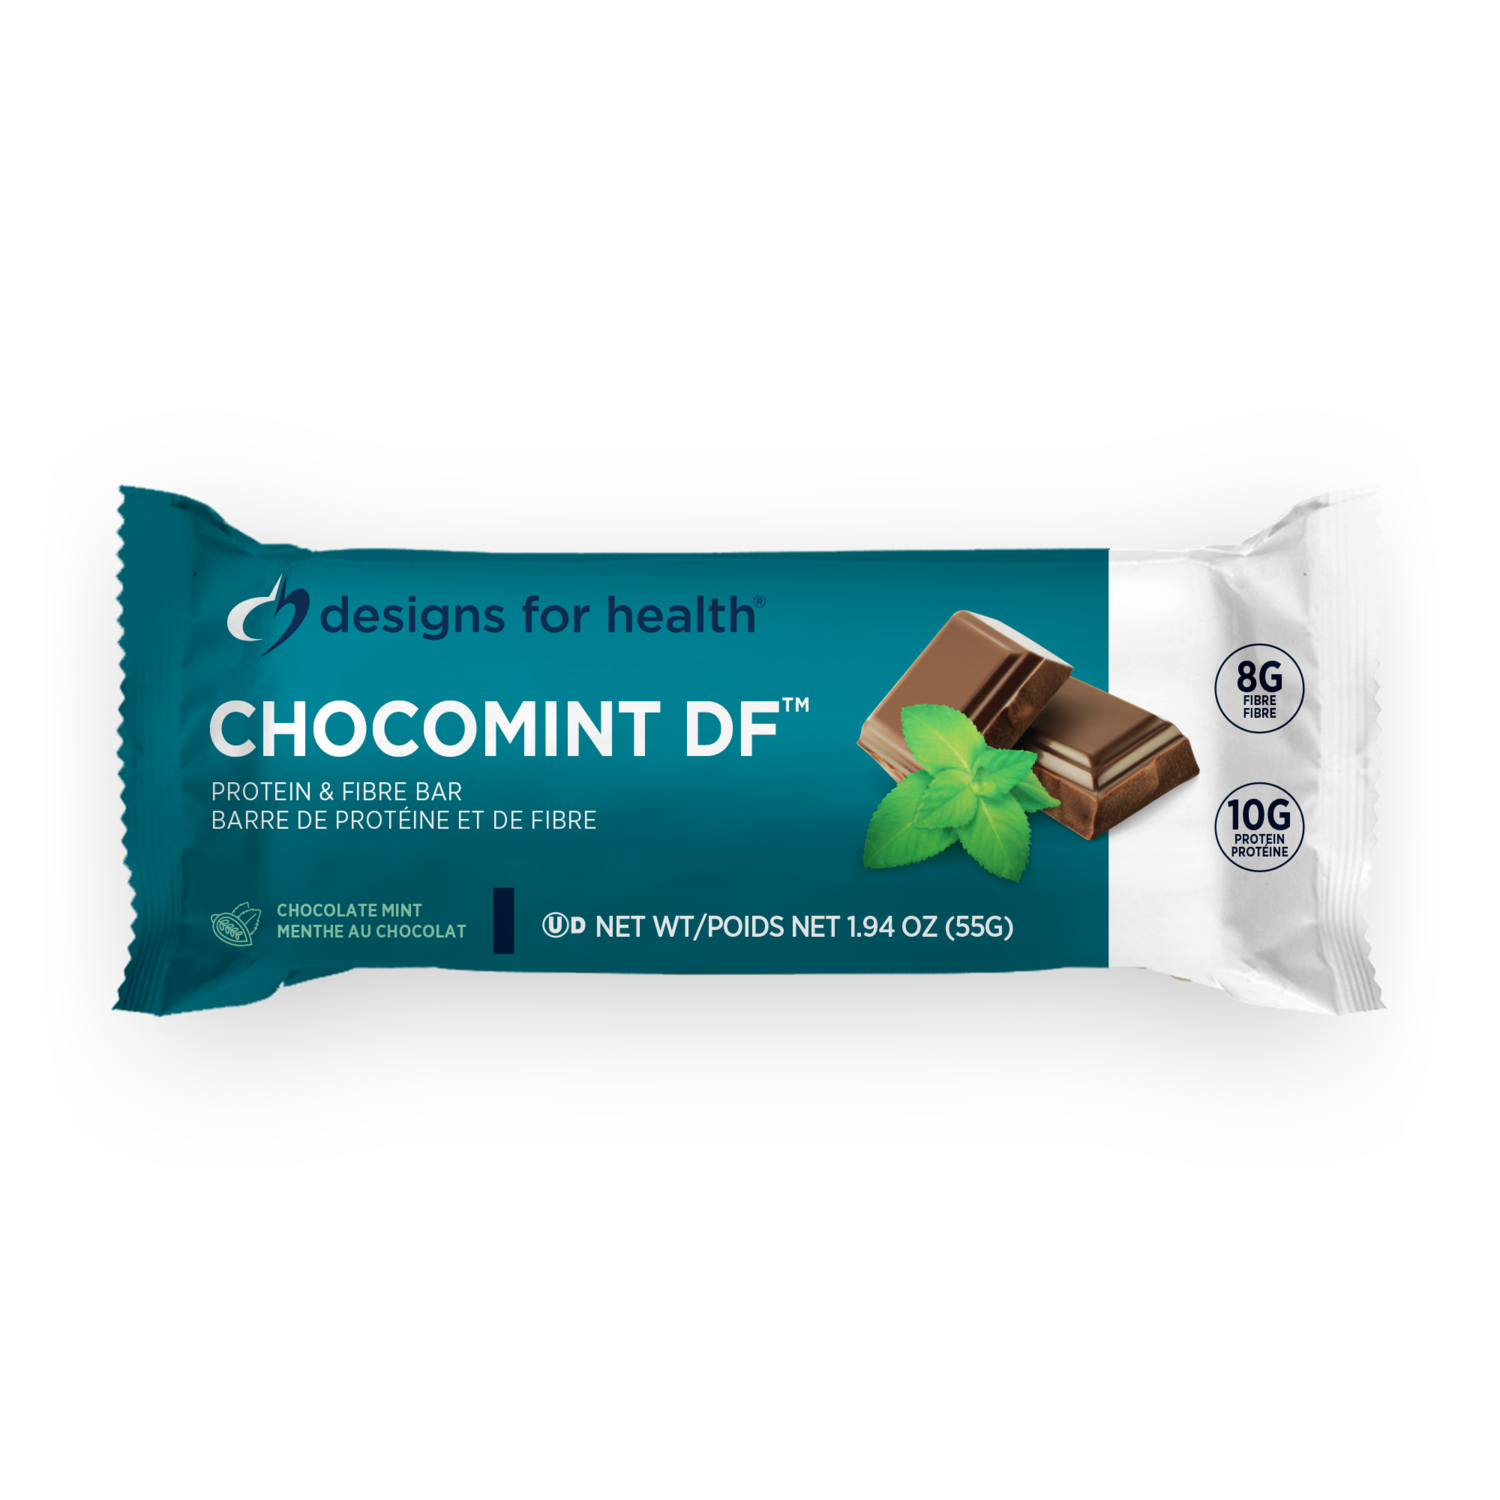 CHOCOMINT VEGAN/VEGETARIAN BARS (12)